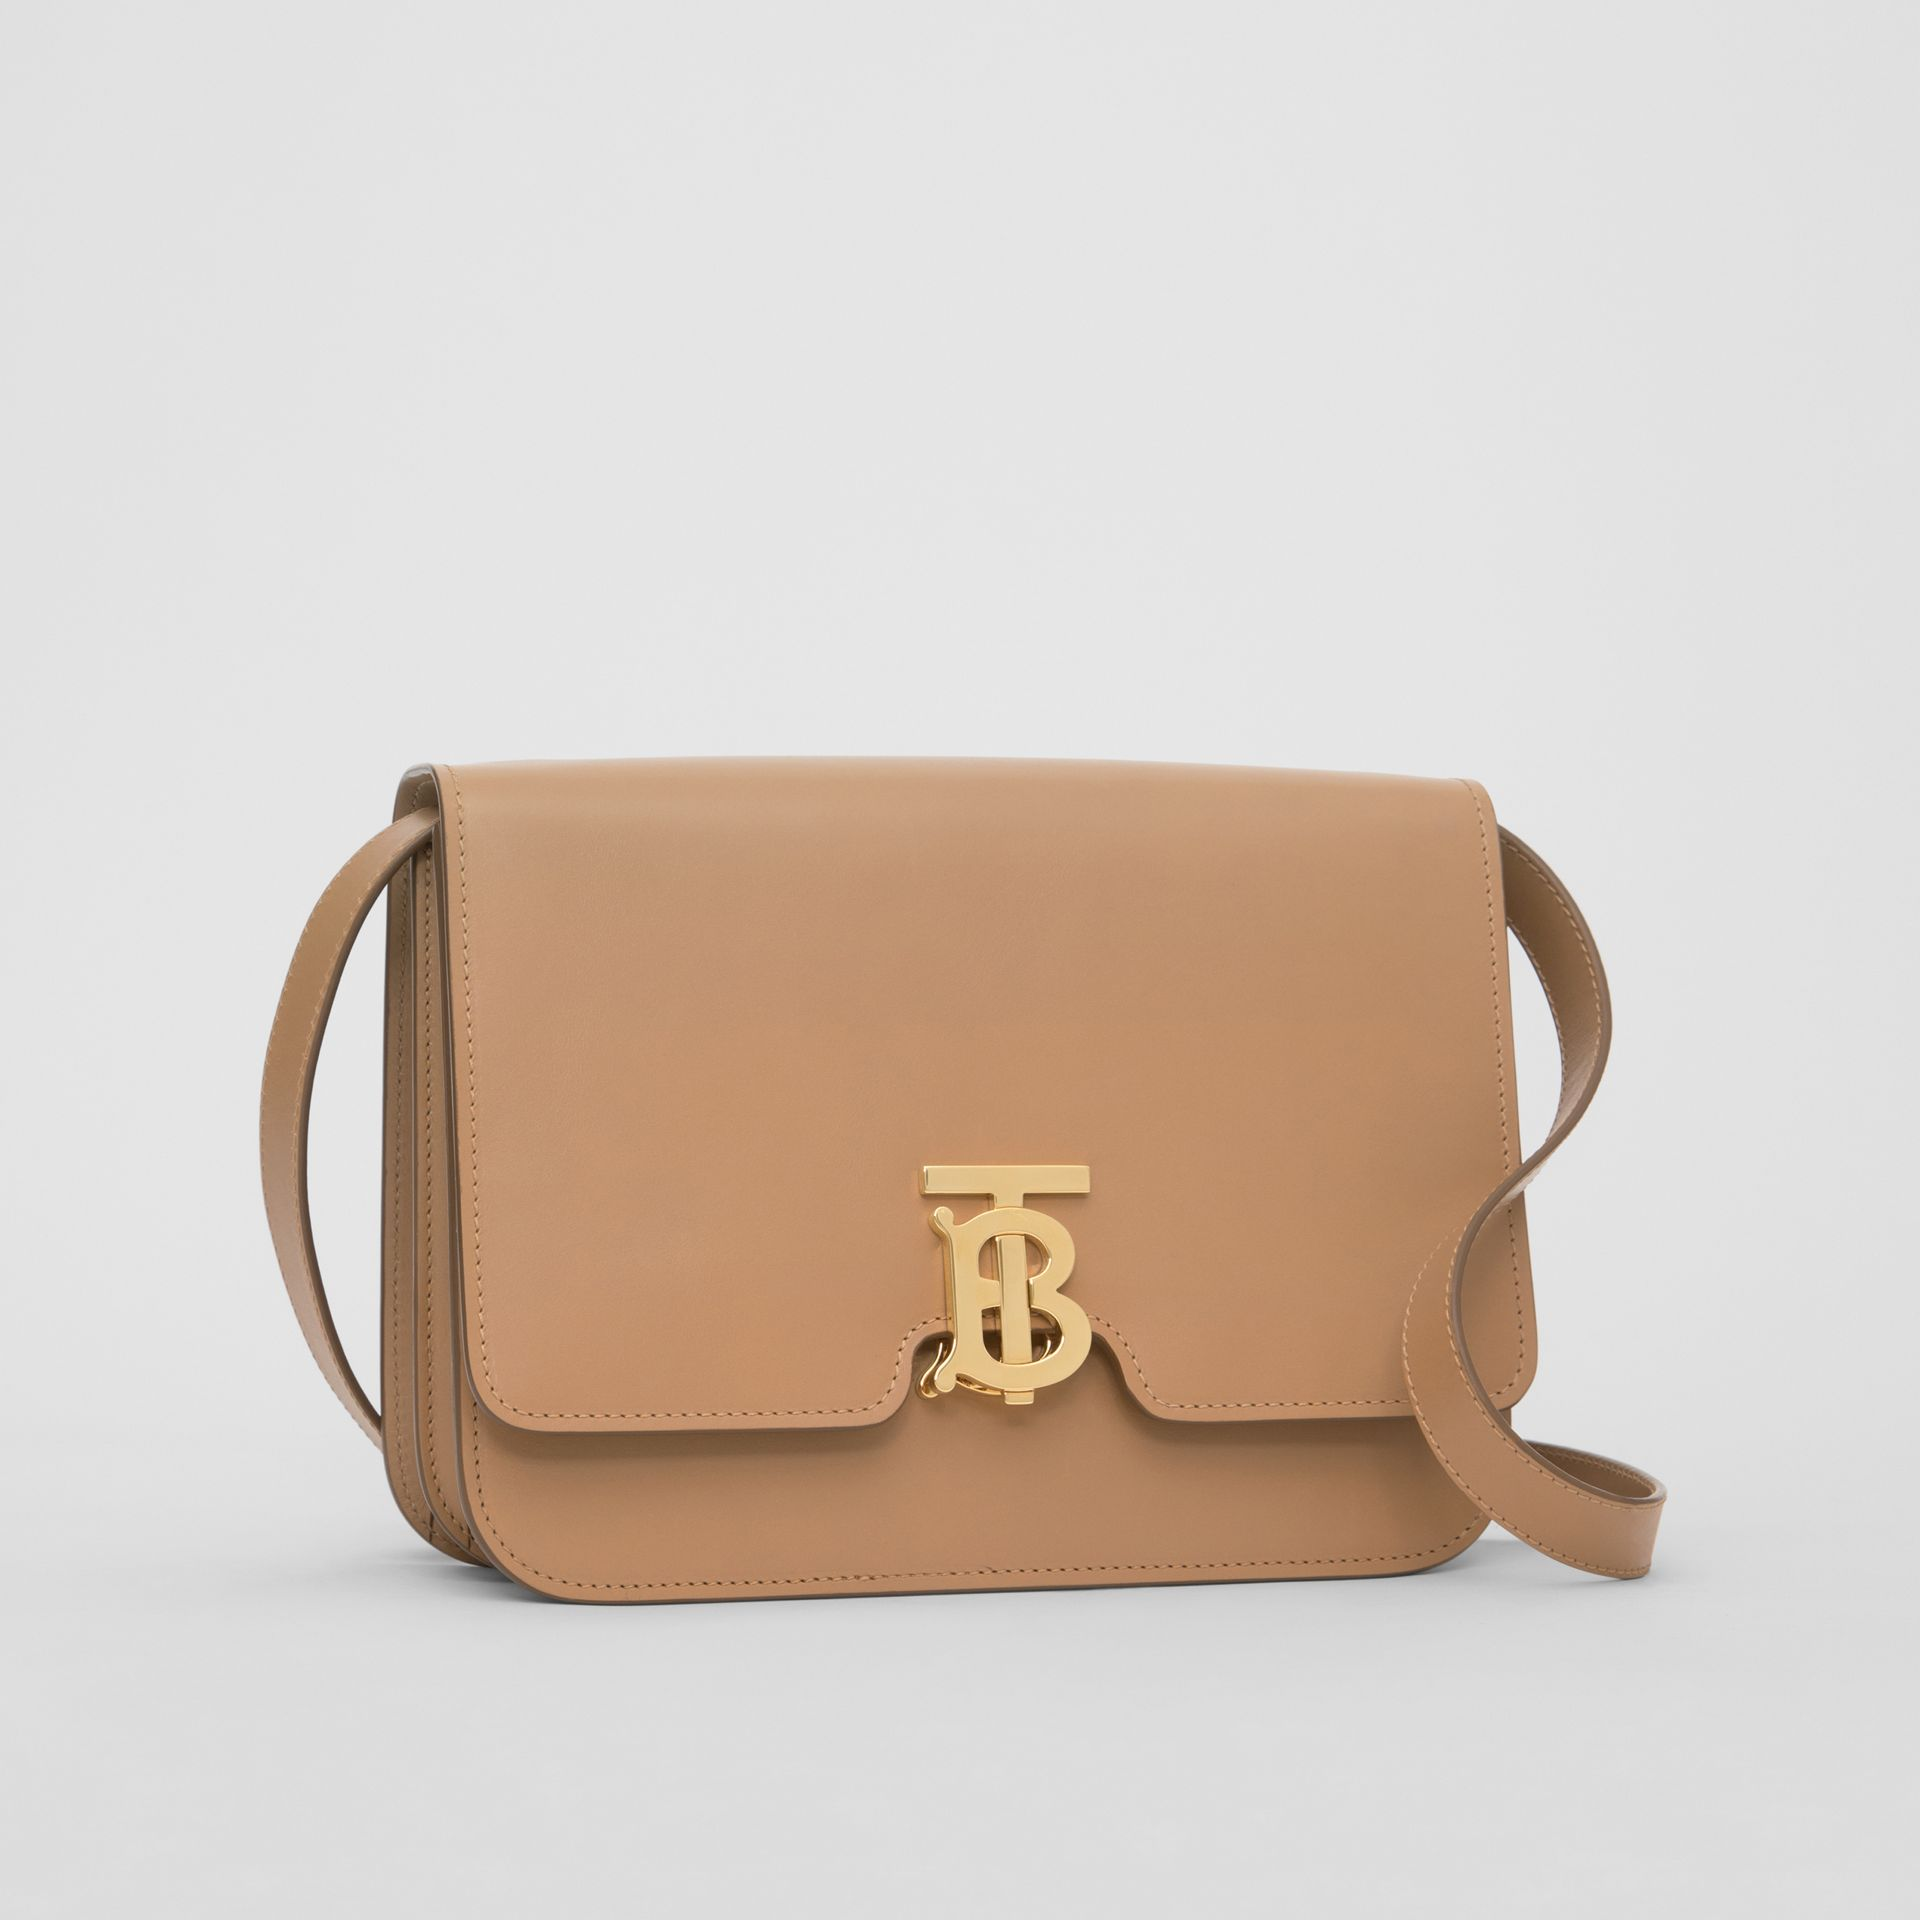 Medium Leather TB Bag in Light Camel - Women | Burberry United Kingdom - gallery image 3